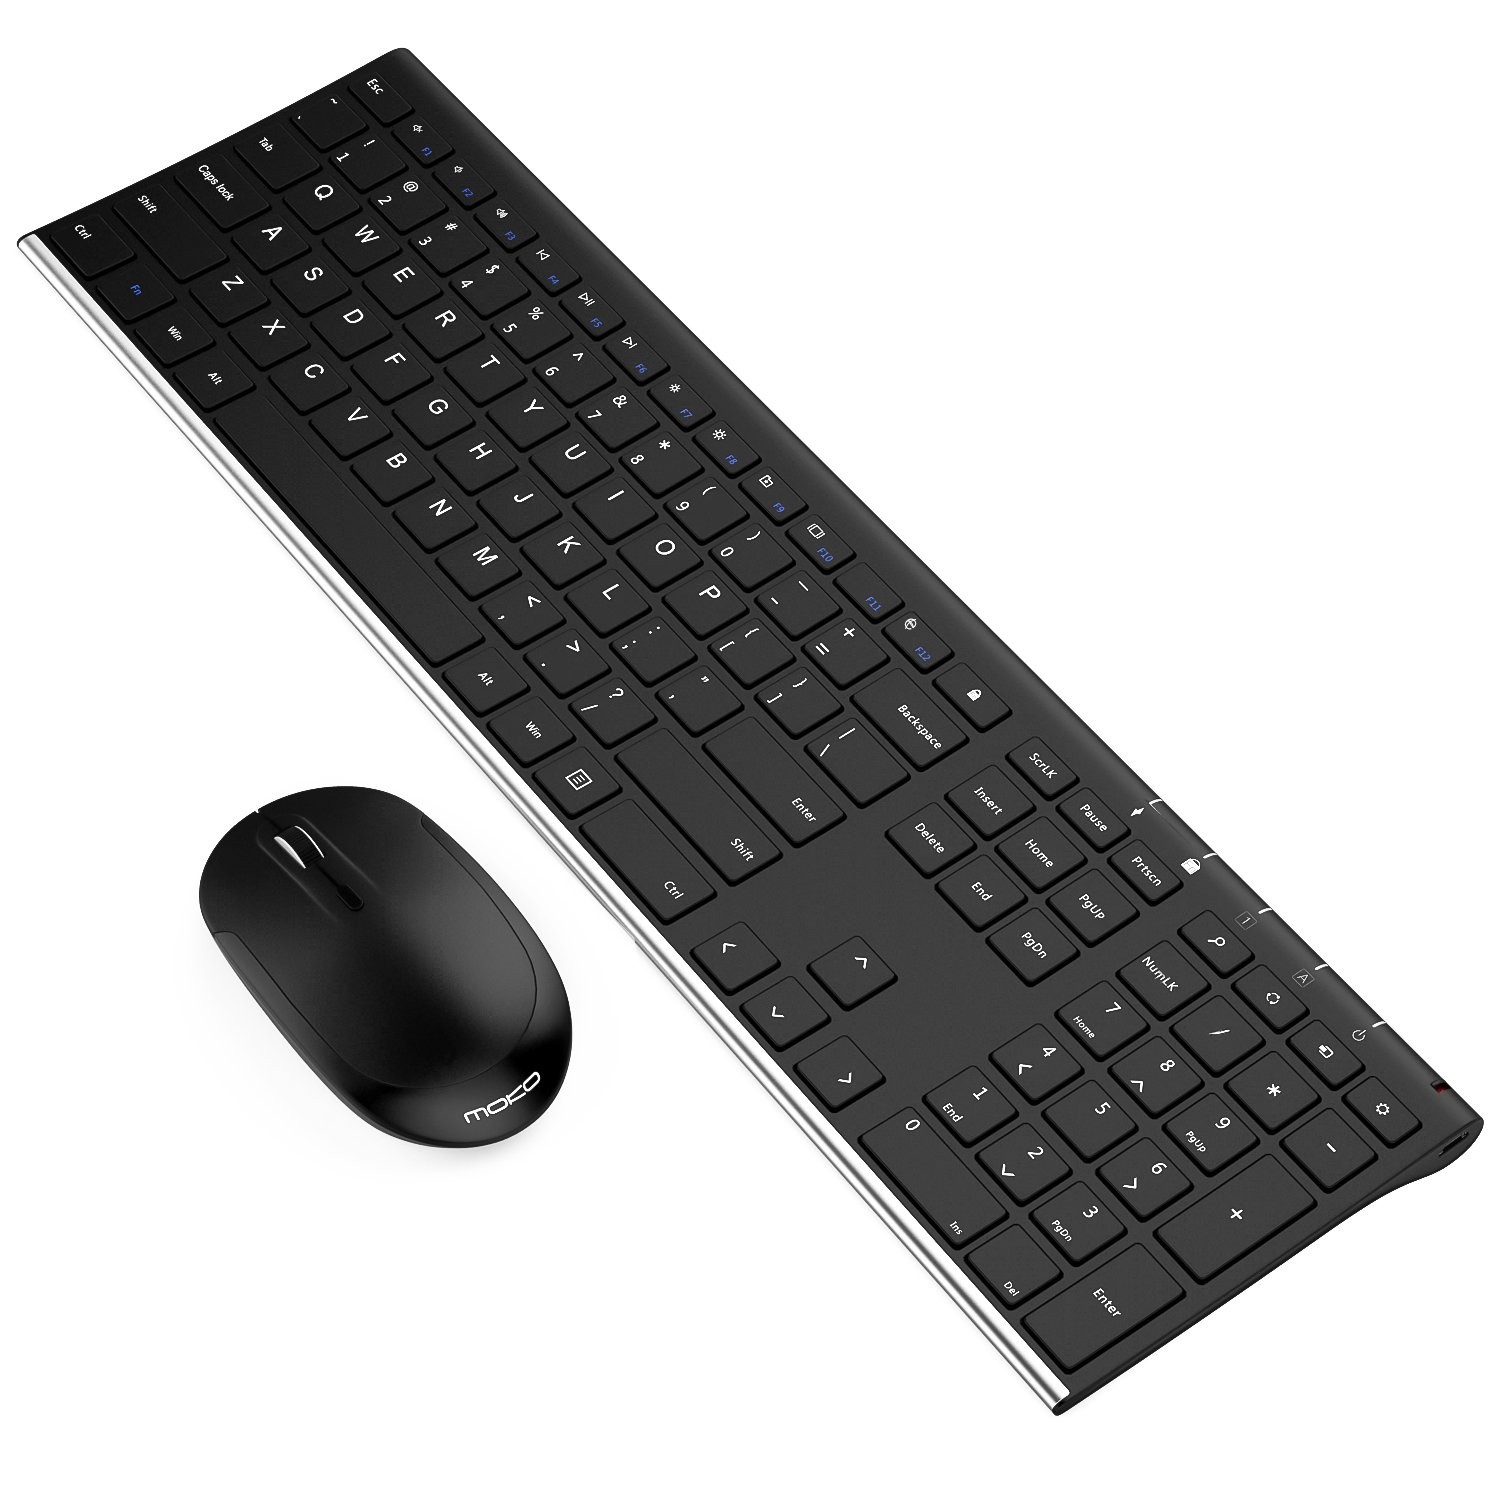 Best Wireless Keyboard 2020 Best Wireless keyboard and Mouse 2019 2020 Buyer's Guide & Reviews